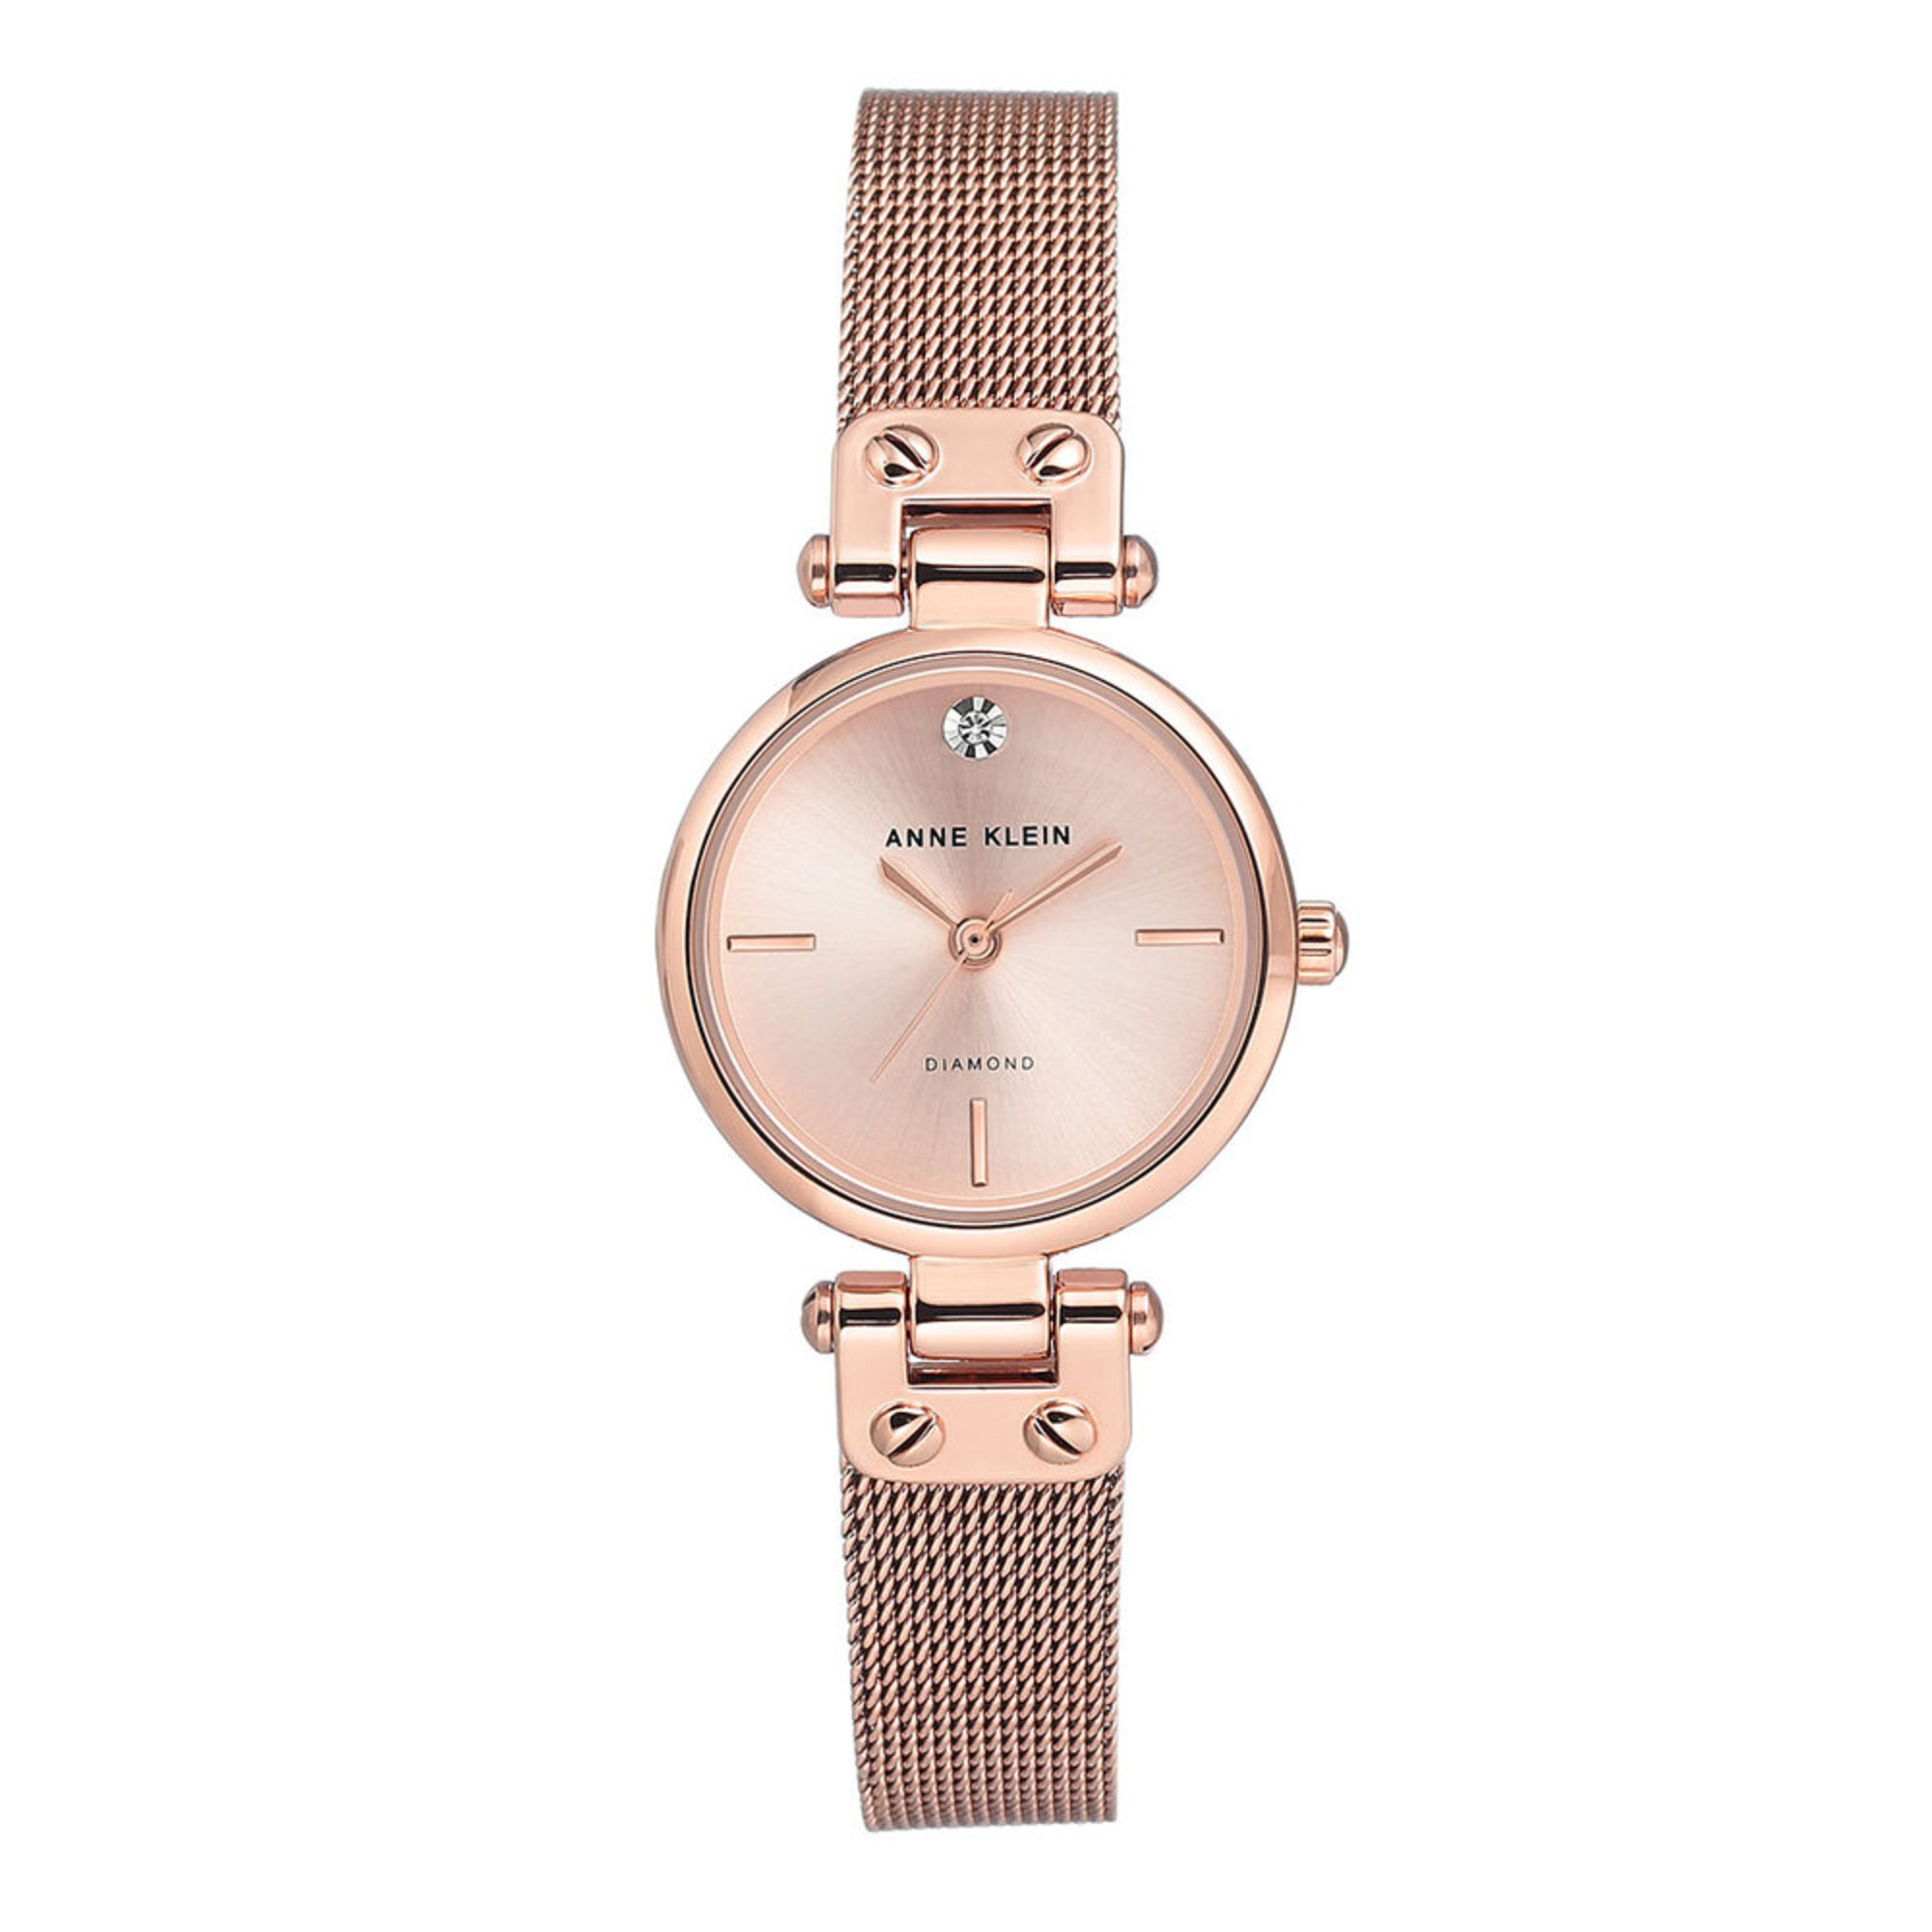 Anne klein women 39 s rose gold tone mesh bracelet watch 26mm women 39 s watches accessories for Anne klein rose gold watch set